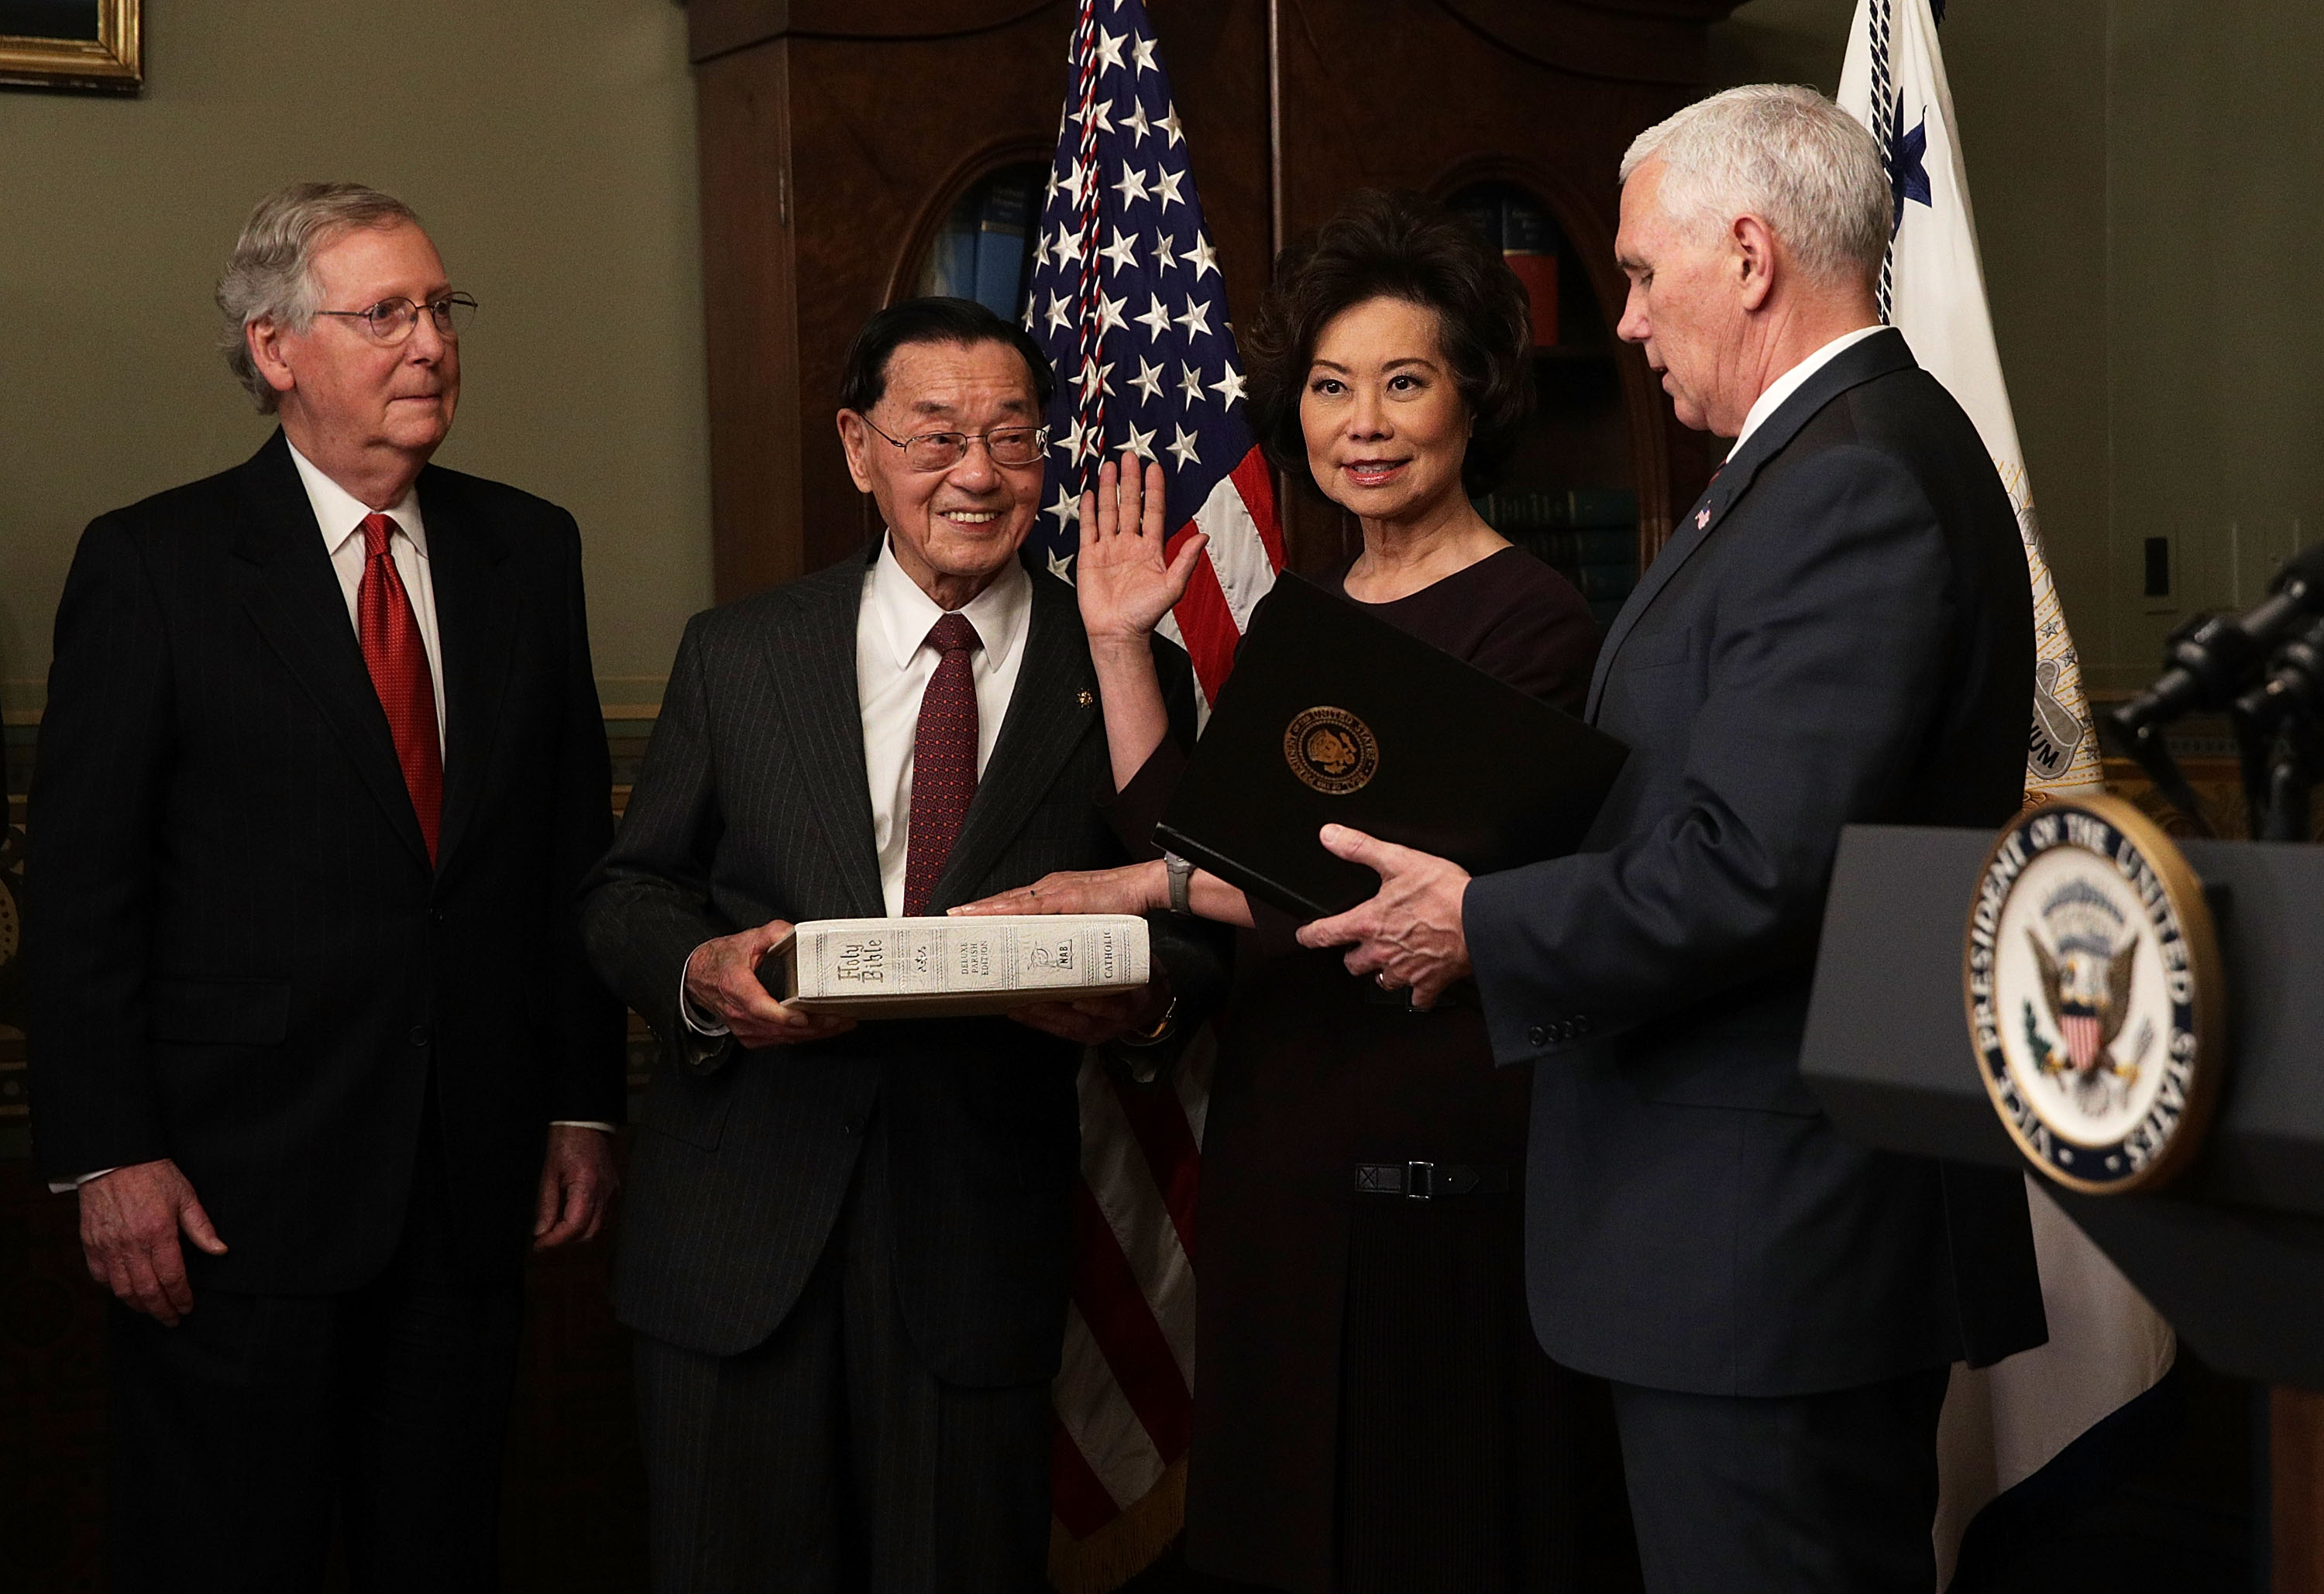 Elaine Chao (3rd L) is sworn in by U.S. Vice President Mike Pence (R) as her father James Chao (2nd L) and her husband Senate Majority Leader Sen. Mitch McConnell (L) look on during a ceremony at the Vice President's ceremonial office at Eisenhower Executive Office Building January 31, 2017 in Washington, DC. (Photo by Alex Wong/Getty Images)